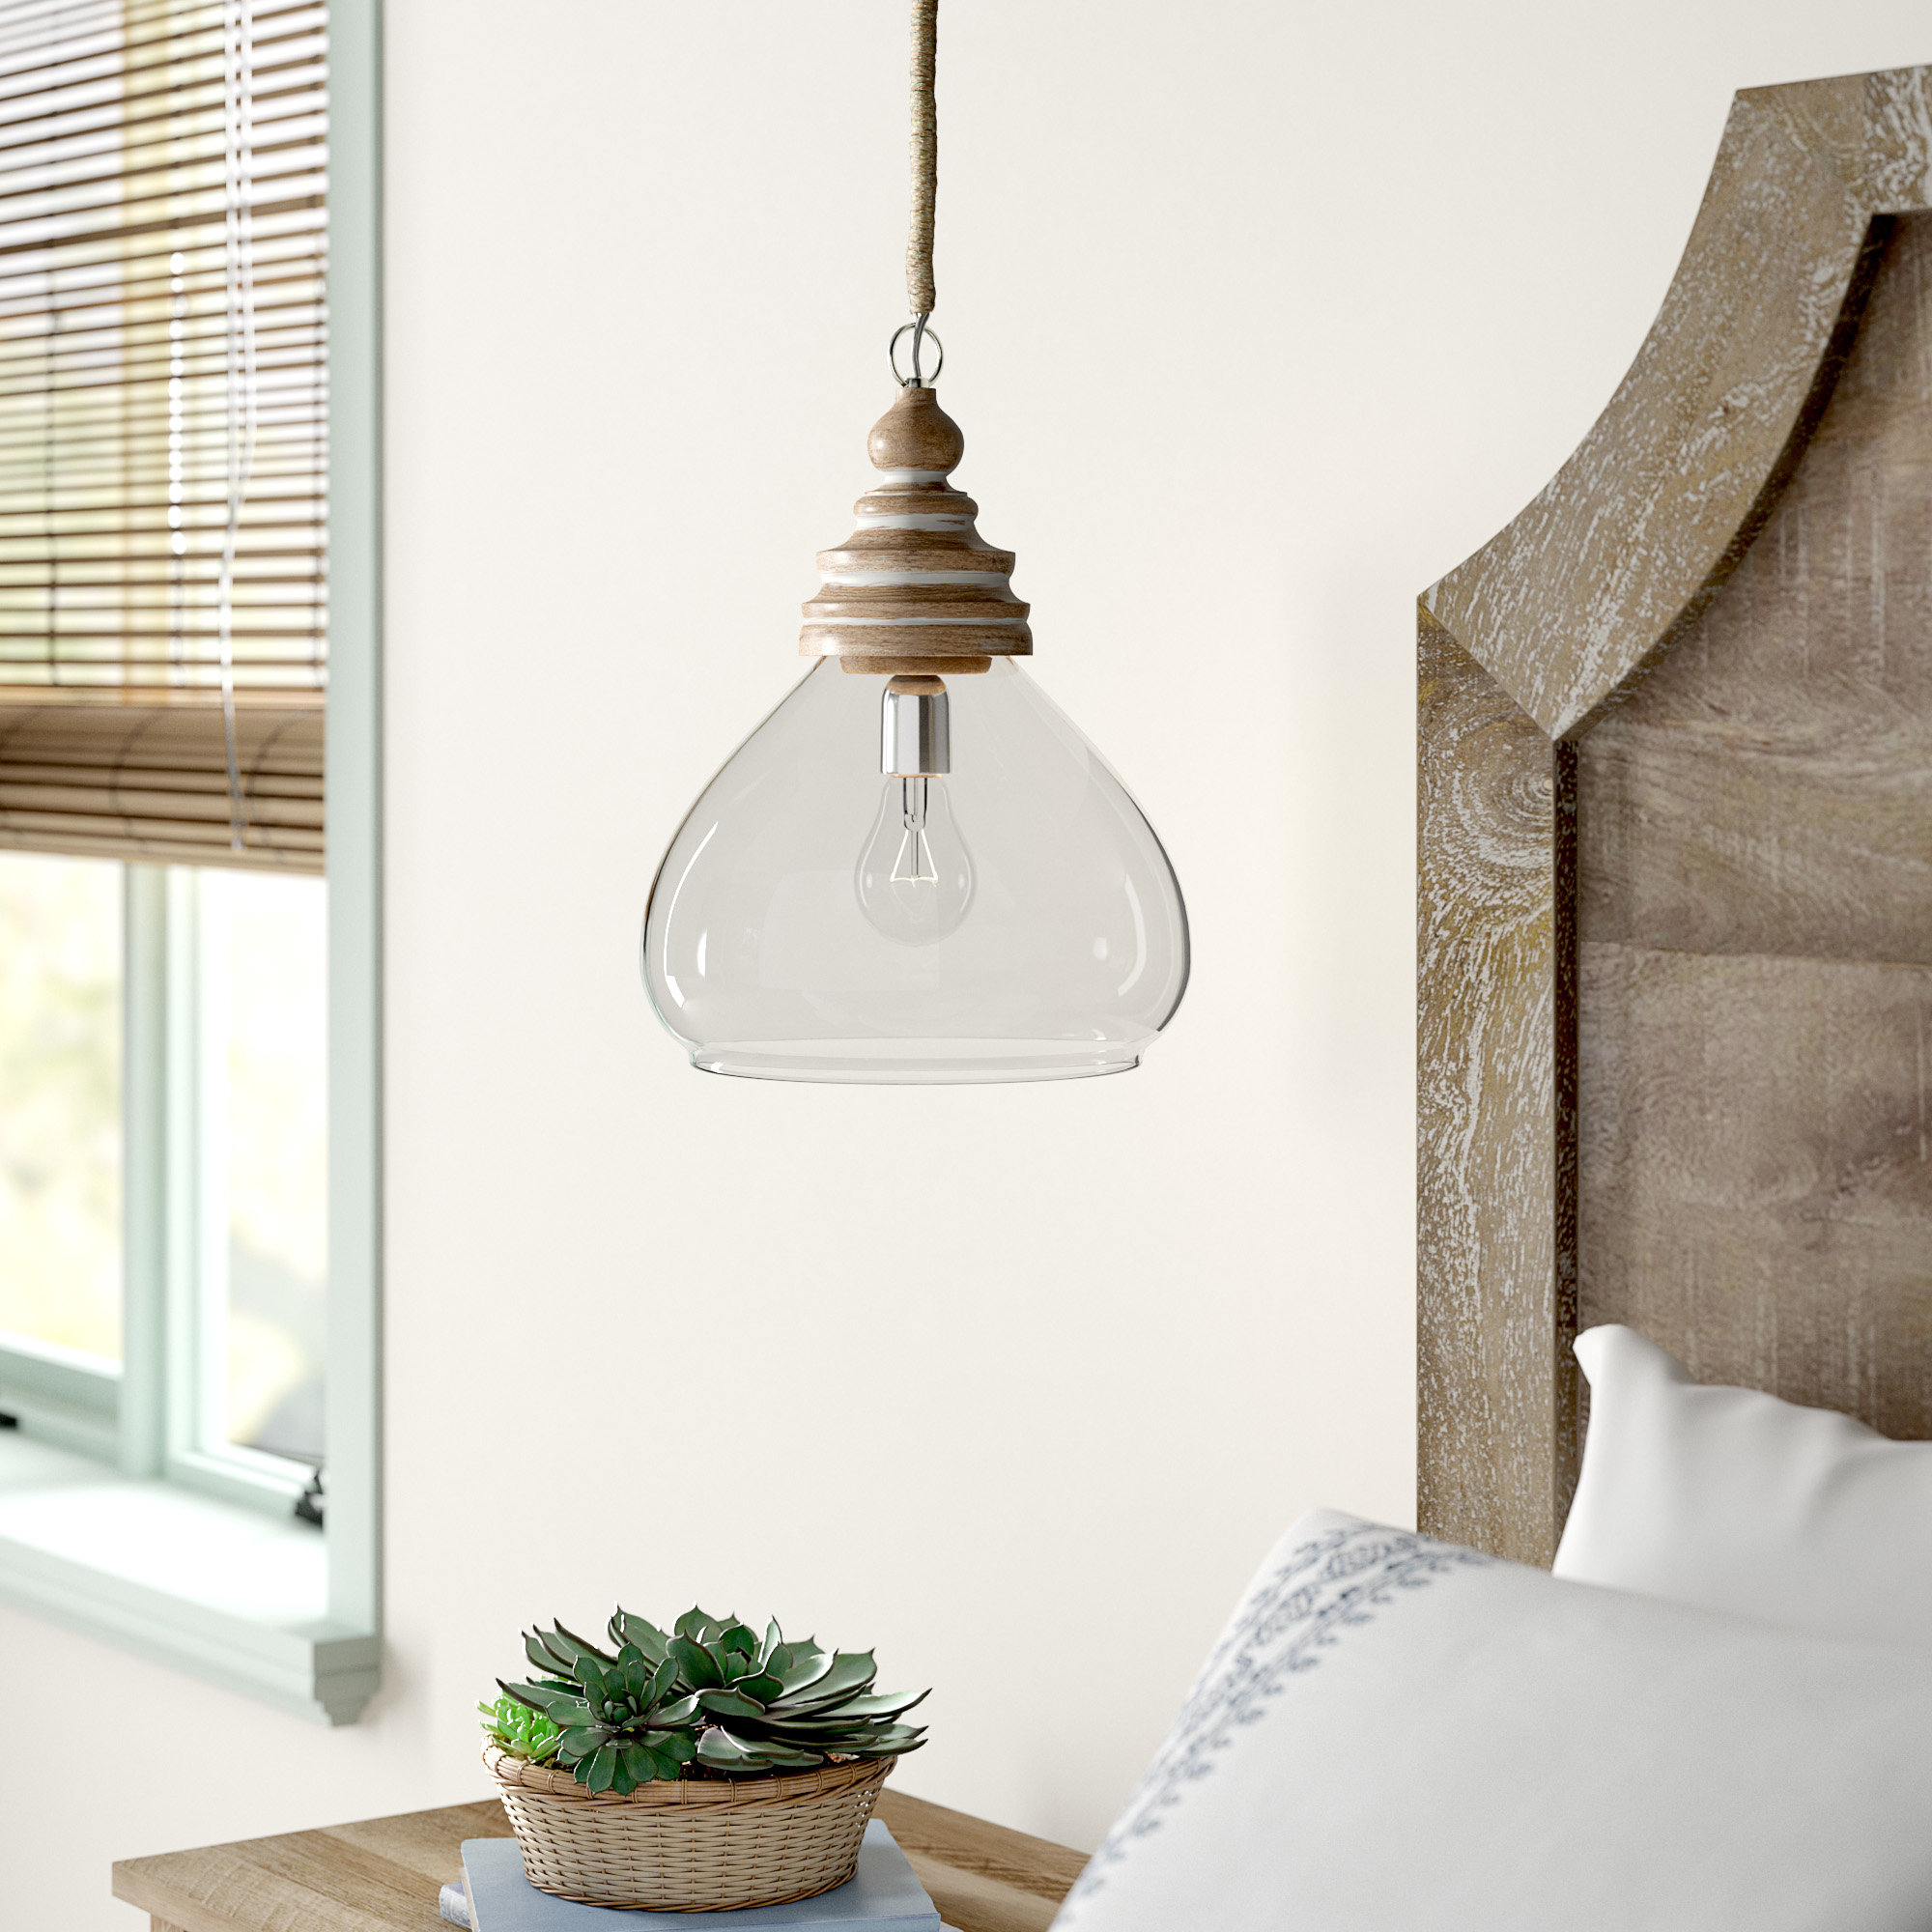 Brisa 1-Light Single Dome Pendant regarding 1-Light Single Dome Pendants (Image 6 of 30)